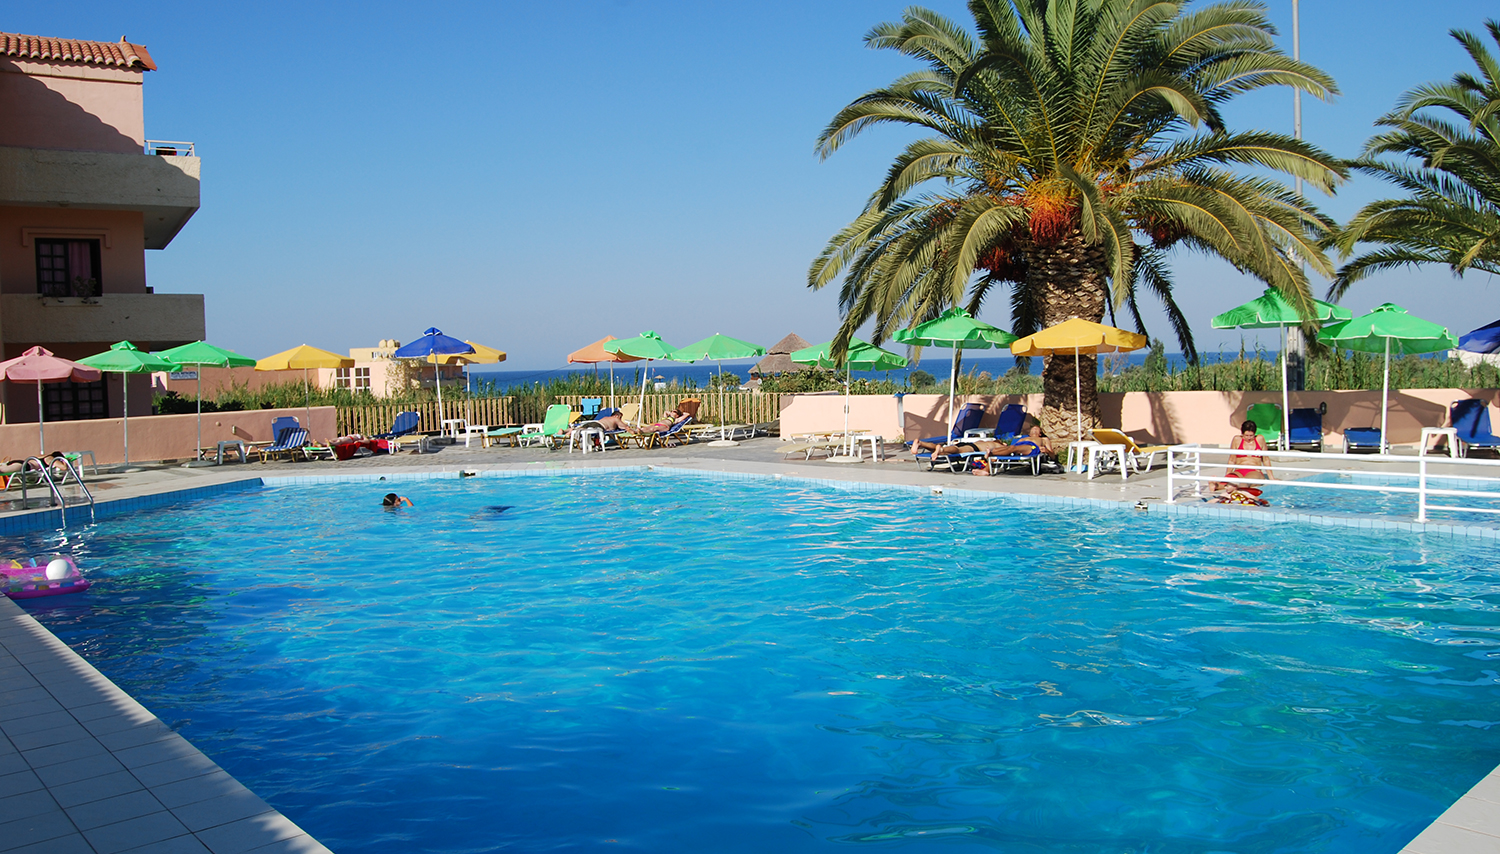 Fereniki Beach Hotels & Resorts hotell (Heraklion, Kreeka)